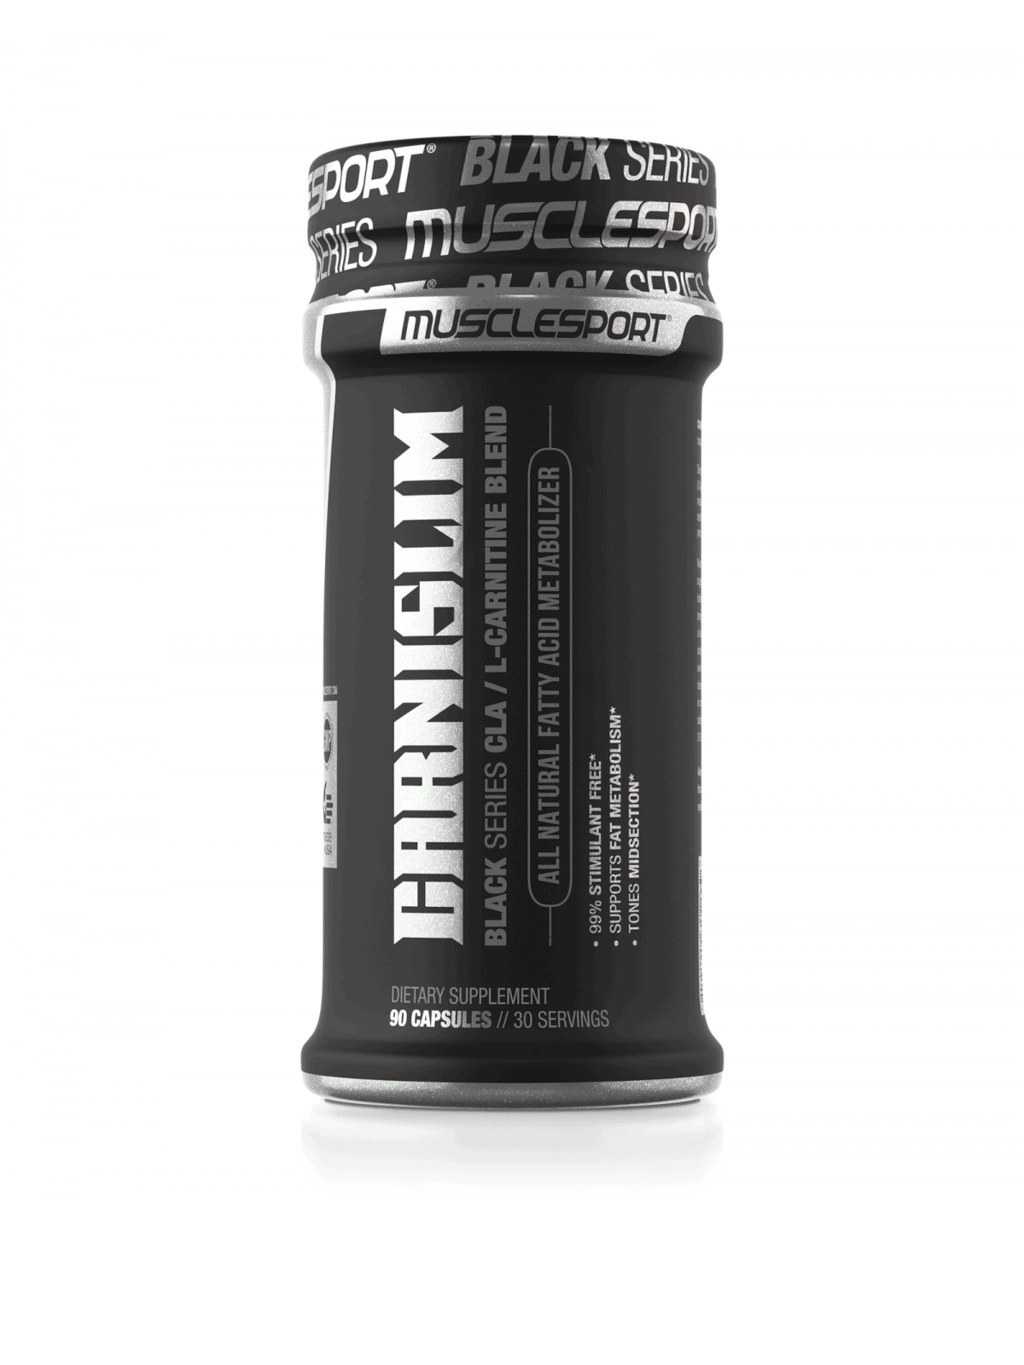 musclesport carnislim supplement